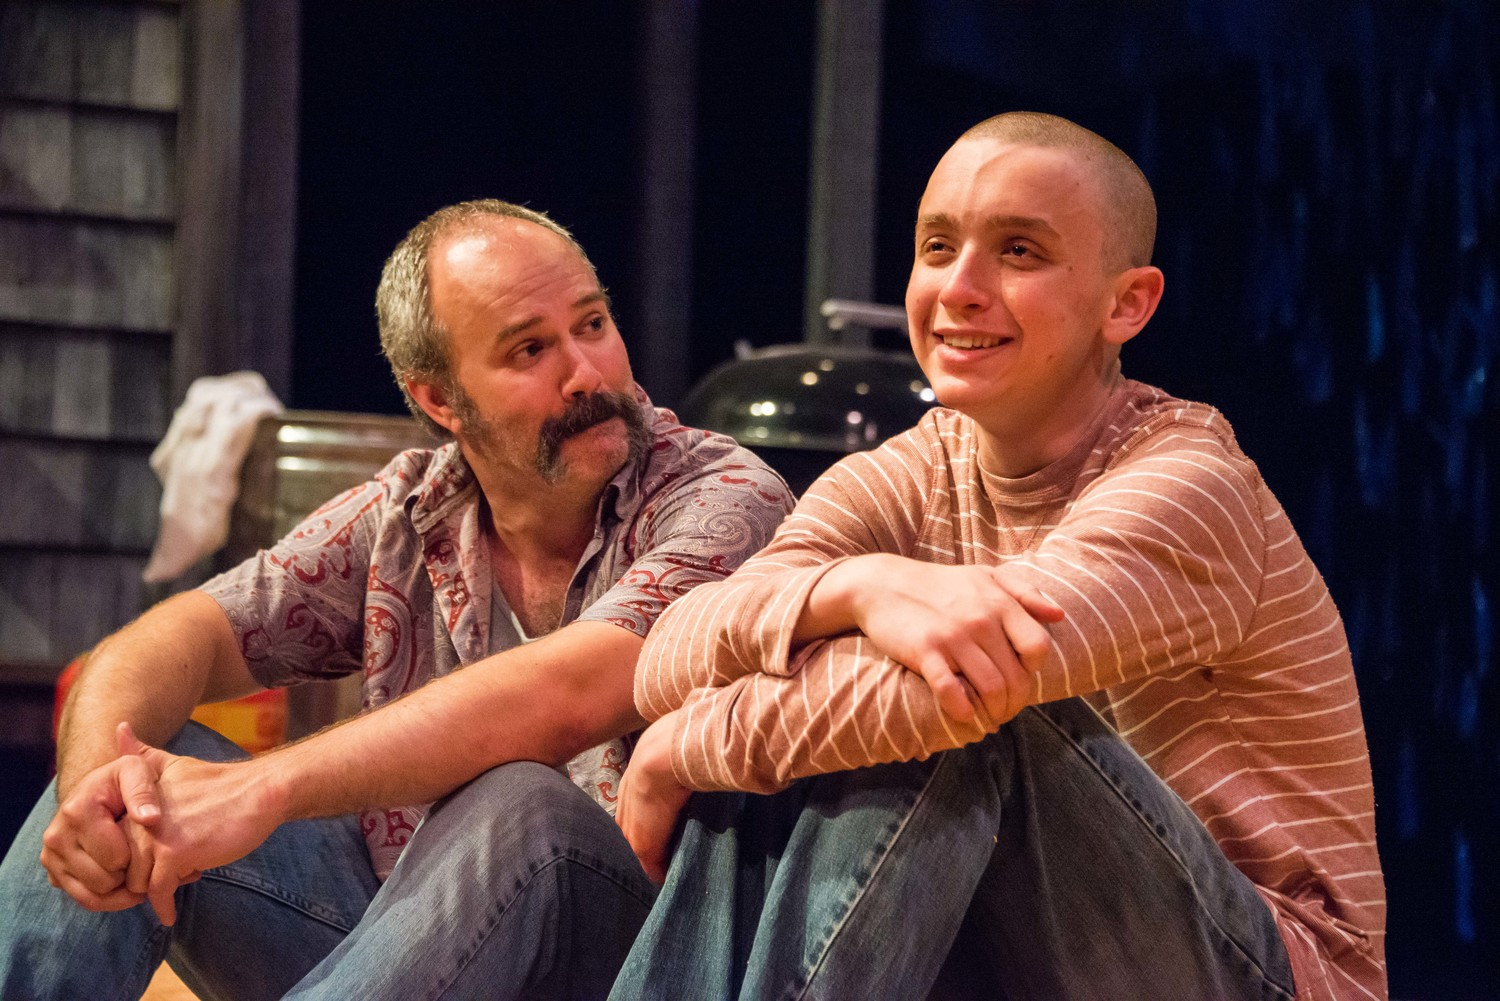 BWW Review: SWIMMING WITH WHALES at 1st Stage